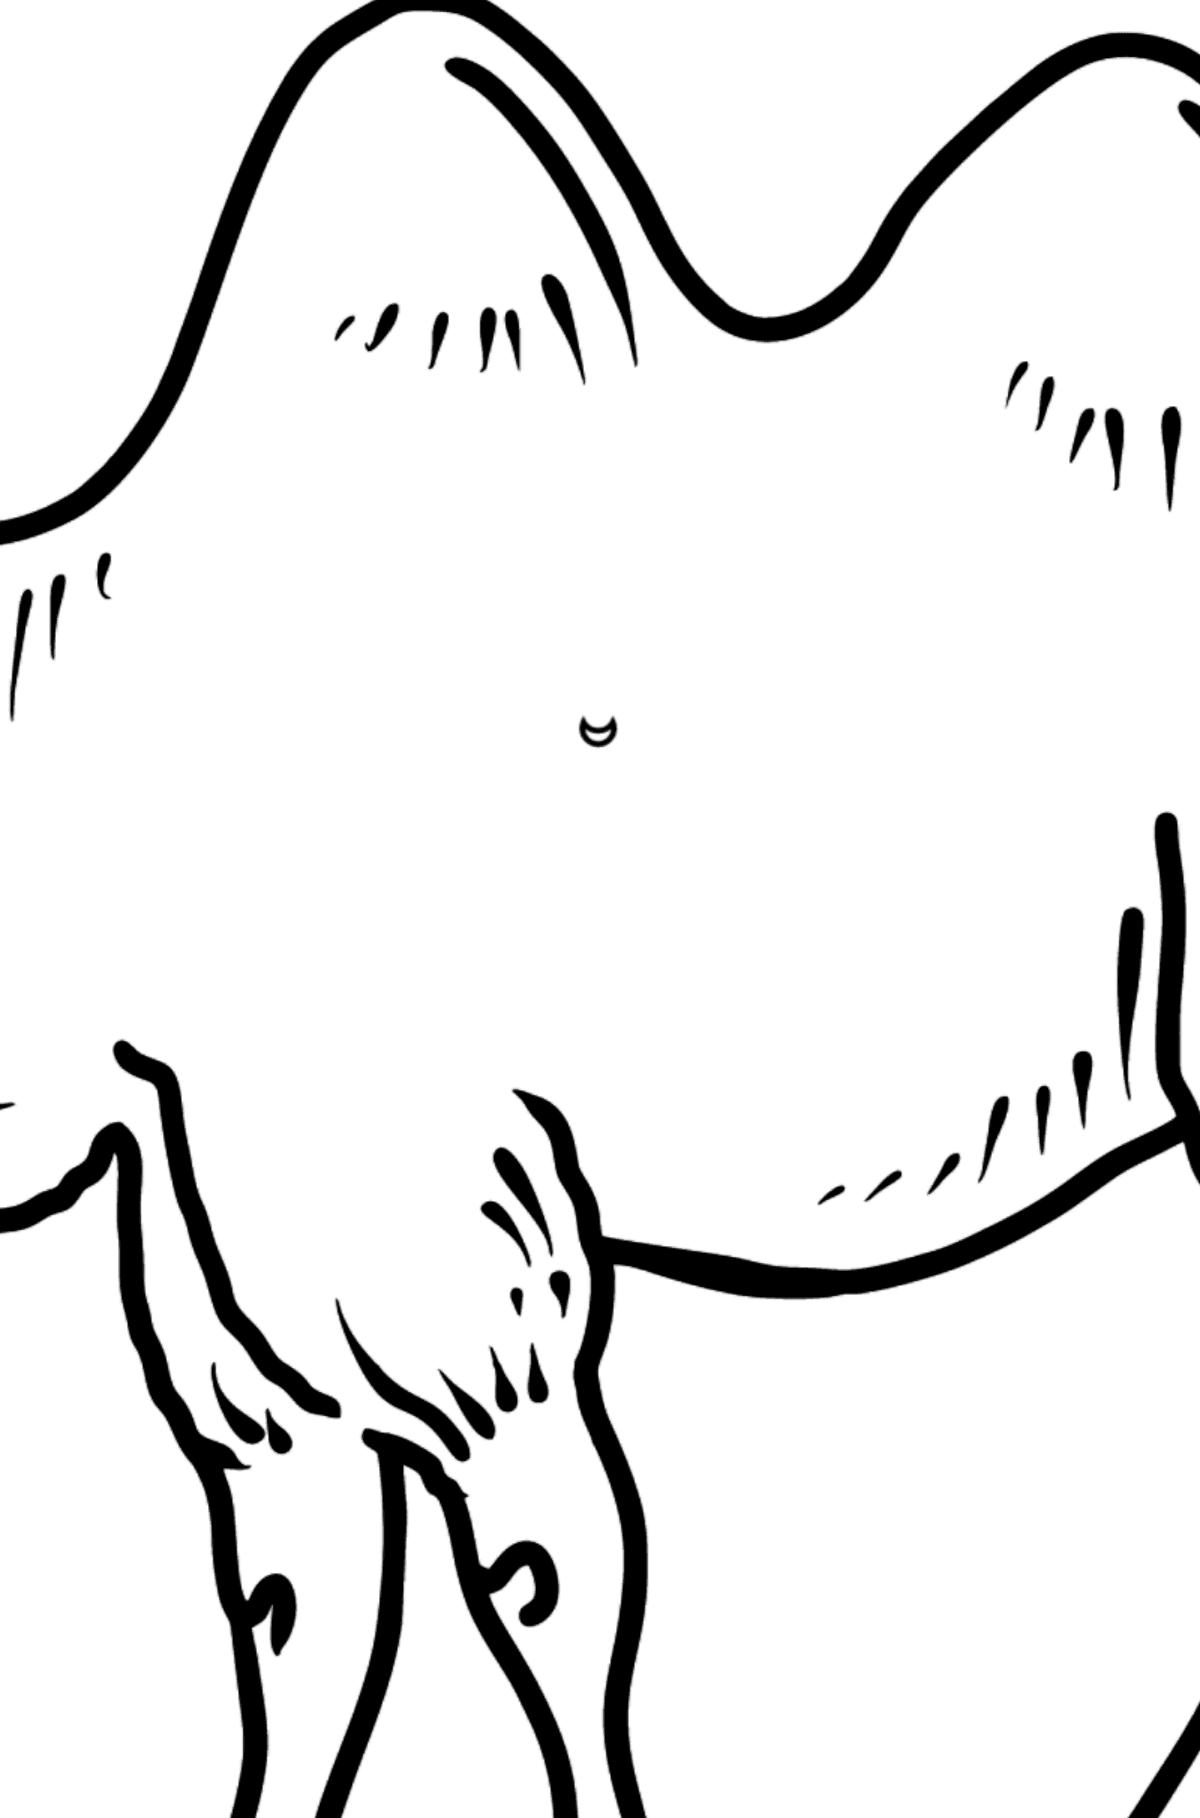 Camel coloring page - Coloring by Symbols for Kids